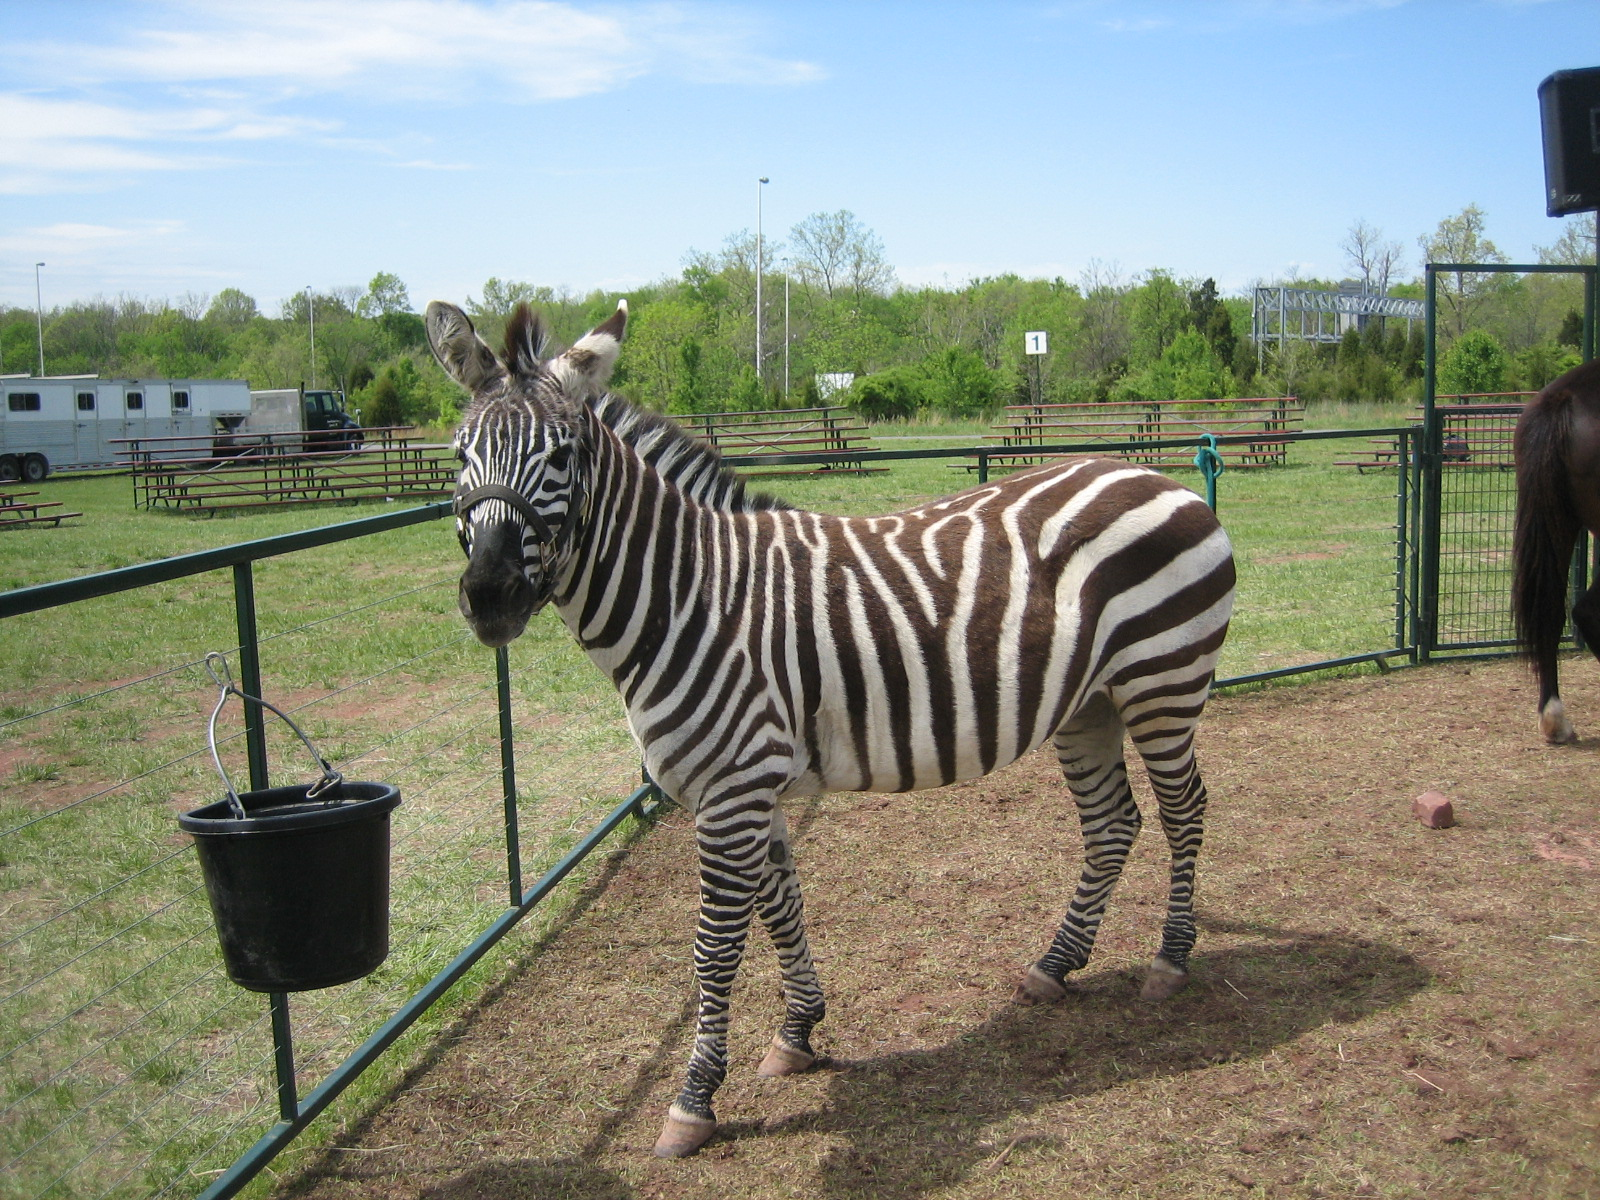 And even a zebra!